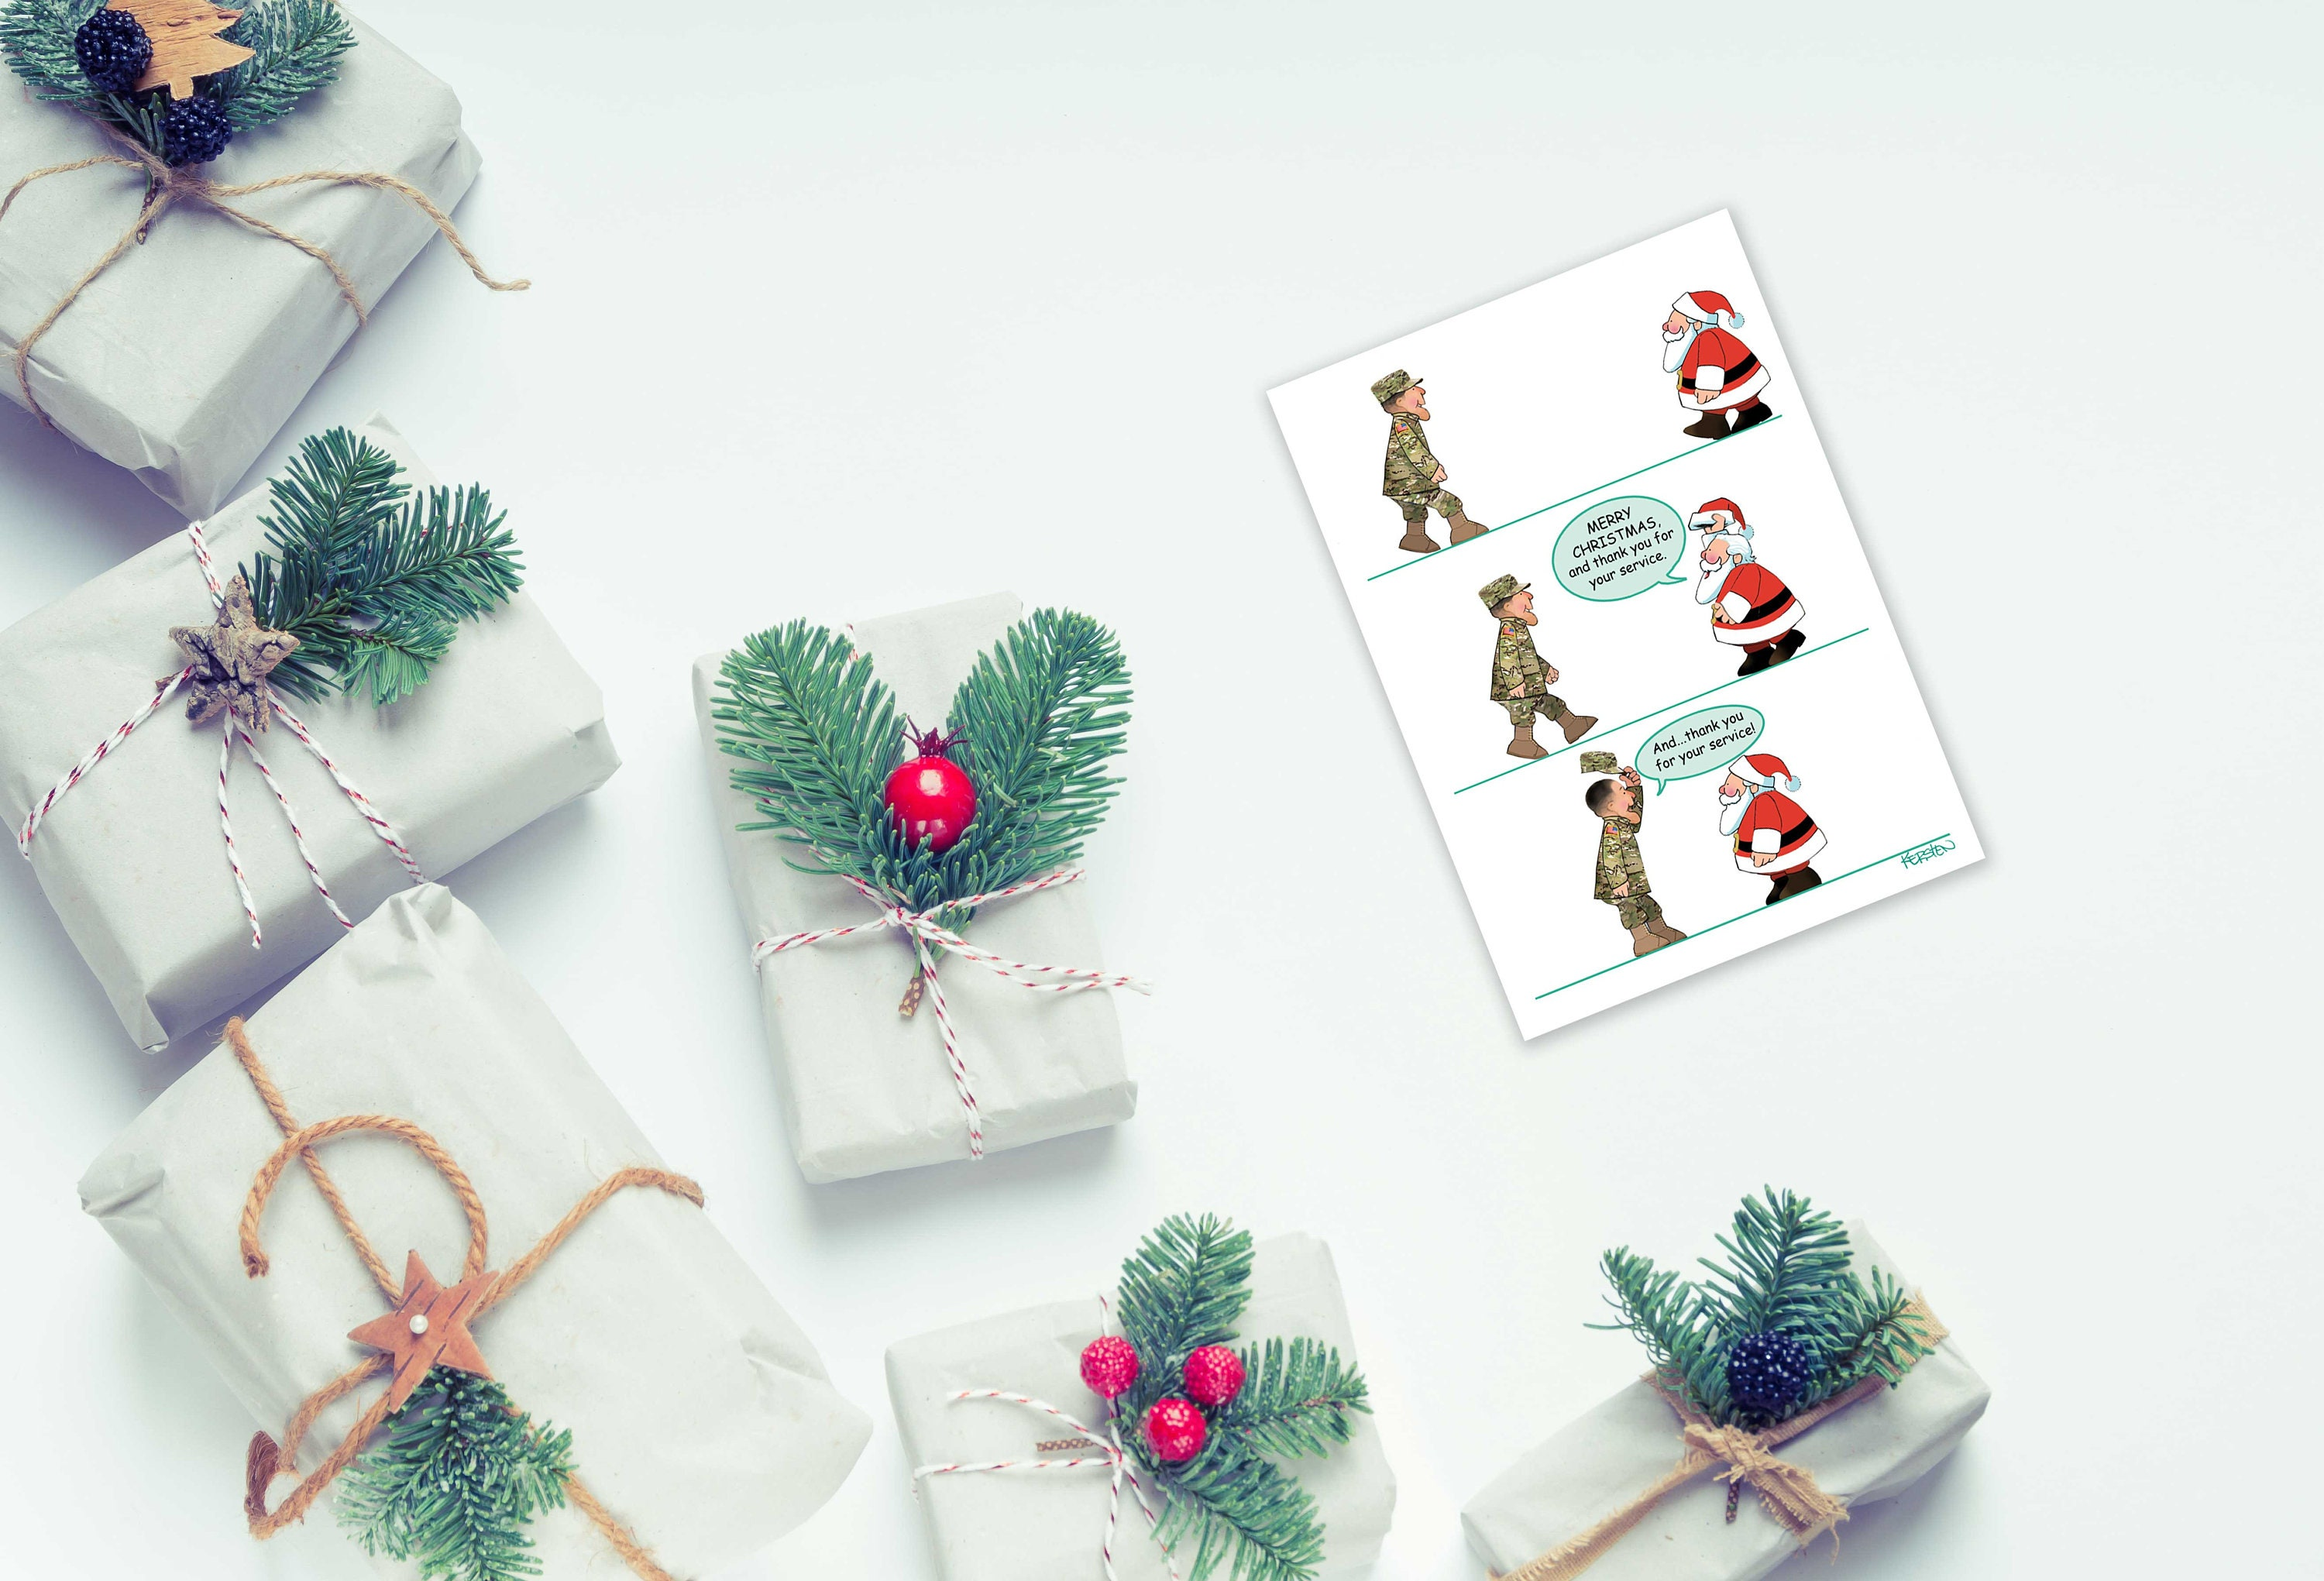 Thank You For Your Service Patriotic Christmas Card 18 | Etsy